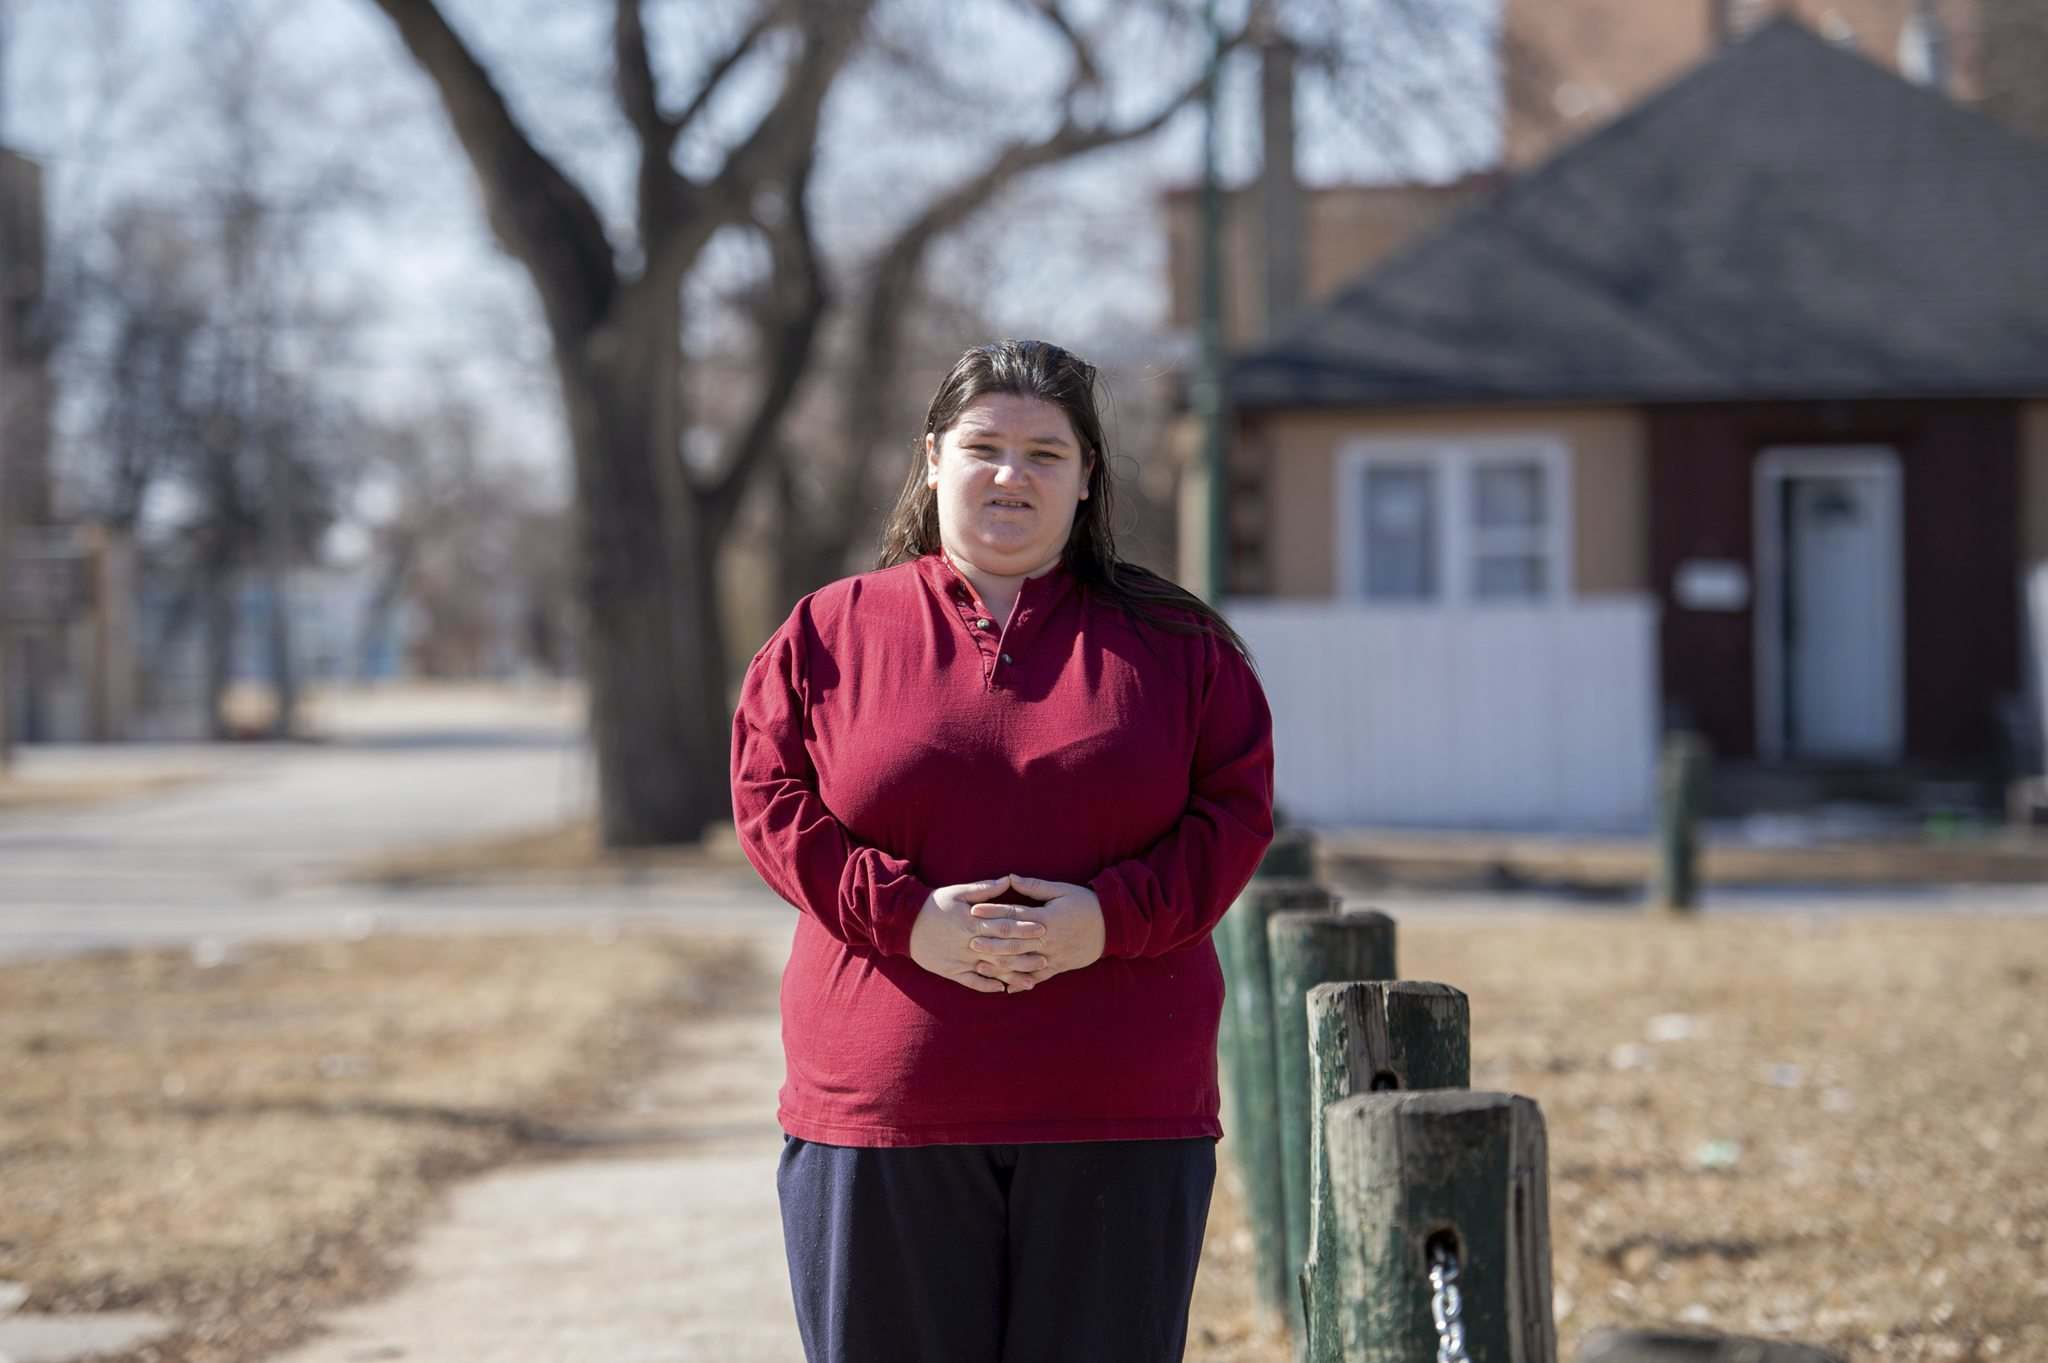 MIKE SUDOMA / WINNIPEG FREE PRESS</p><p>Jacqueline Rieu is a parent volunteer with the grassroots organization Fearless R2W, an organization dedicated to helping families navigate the CFS system.</p>